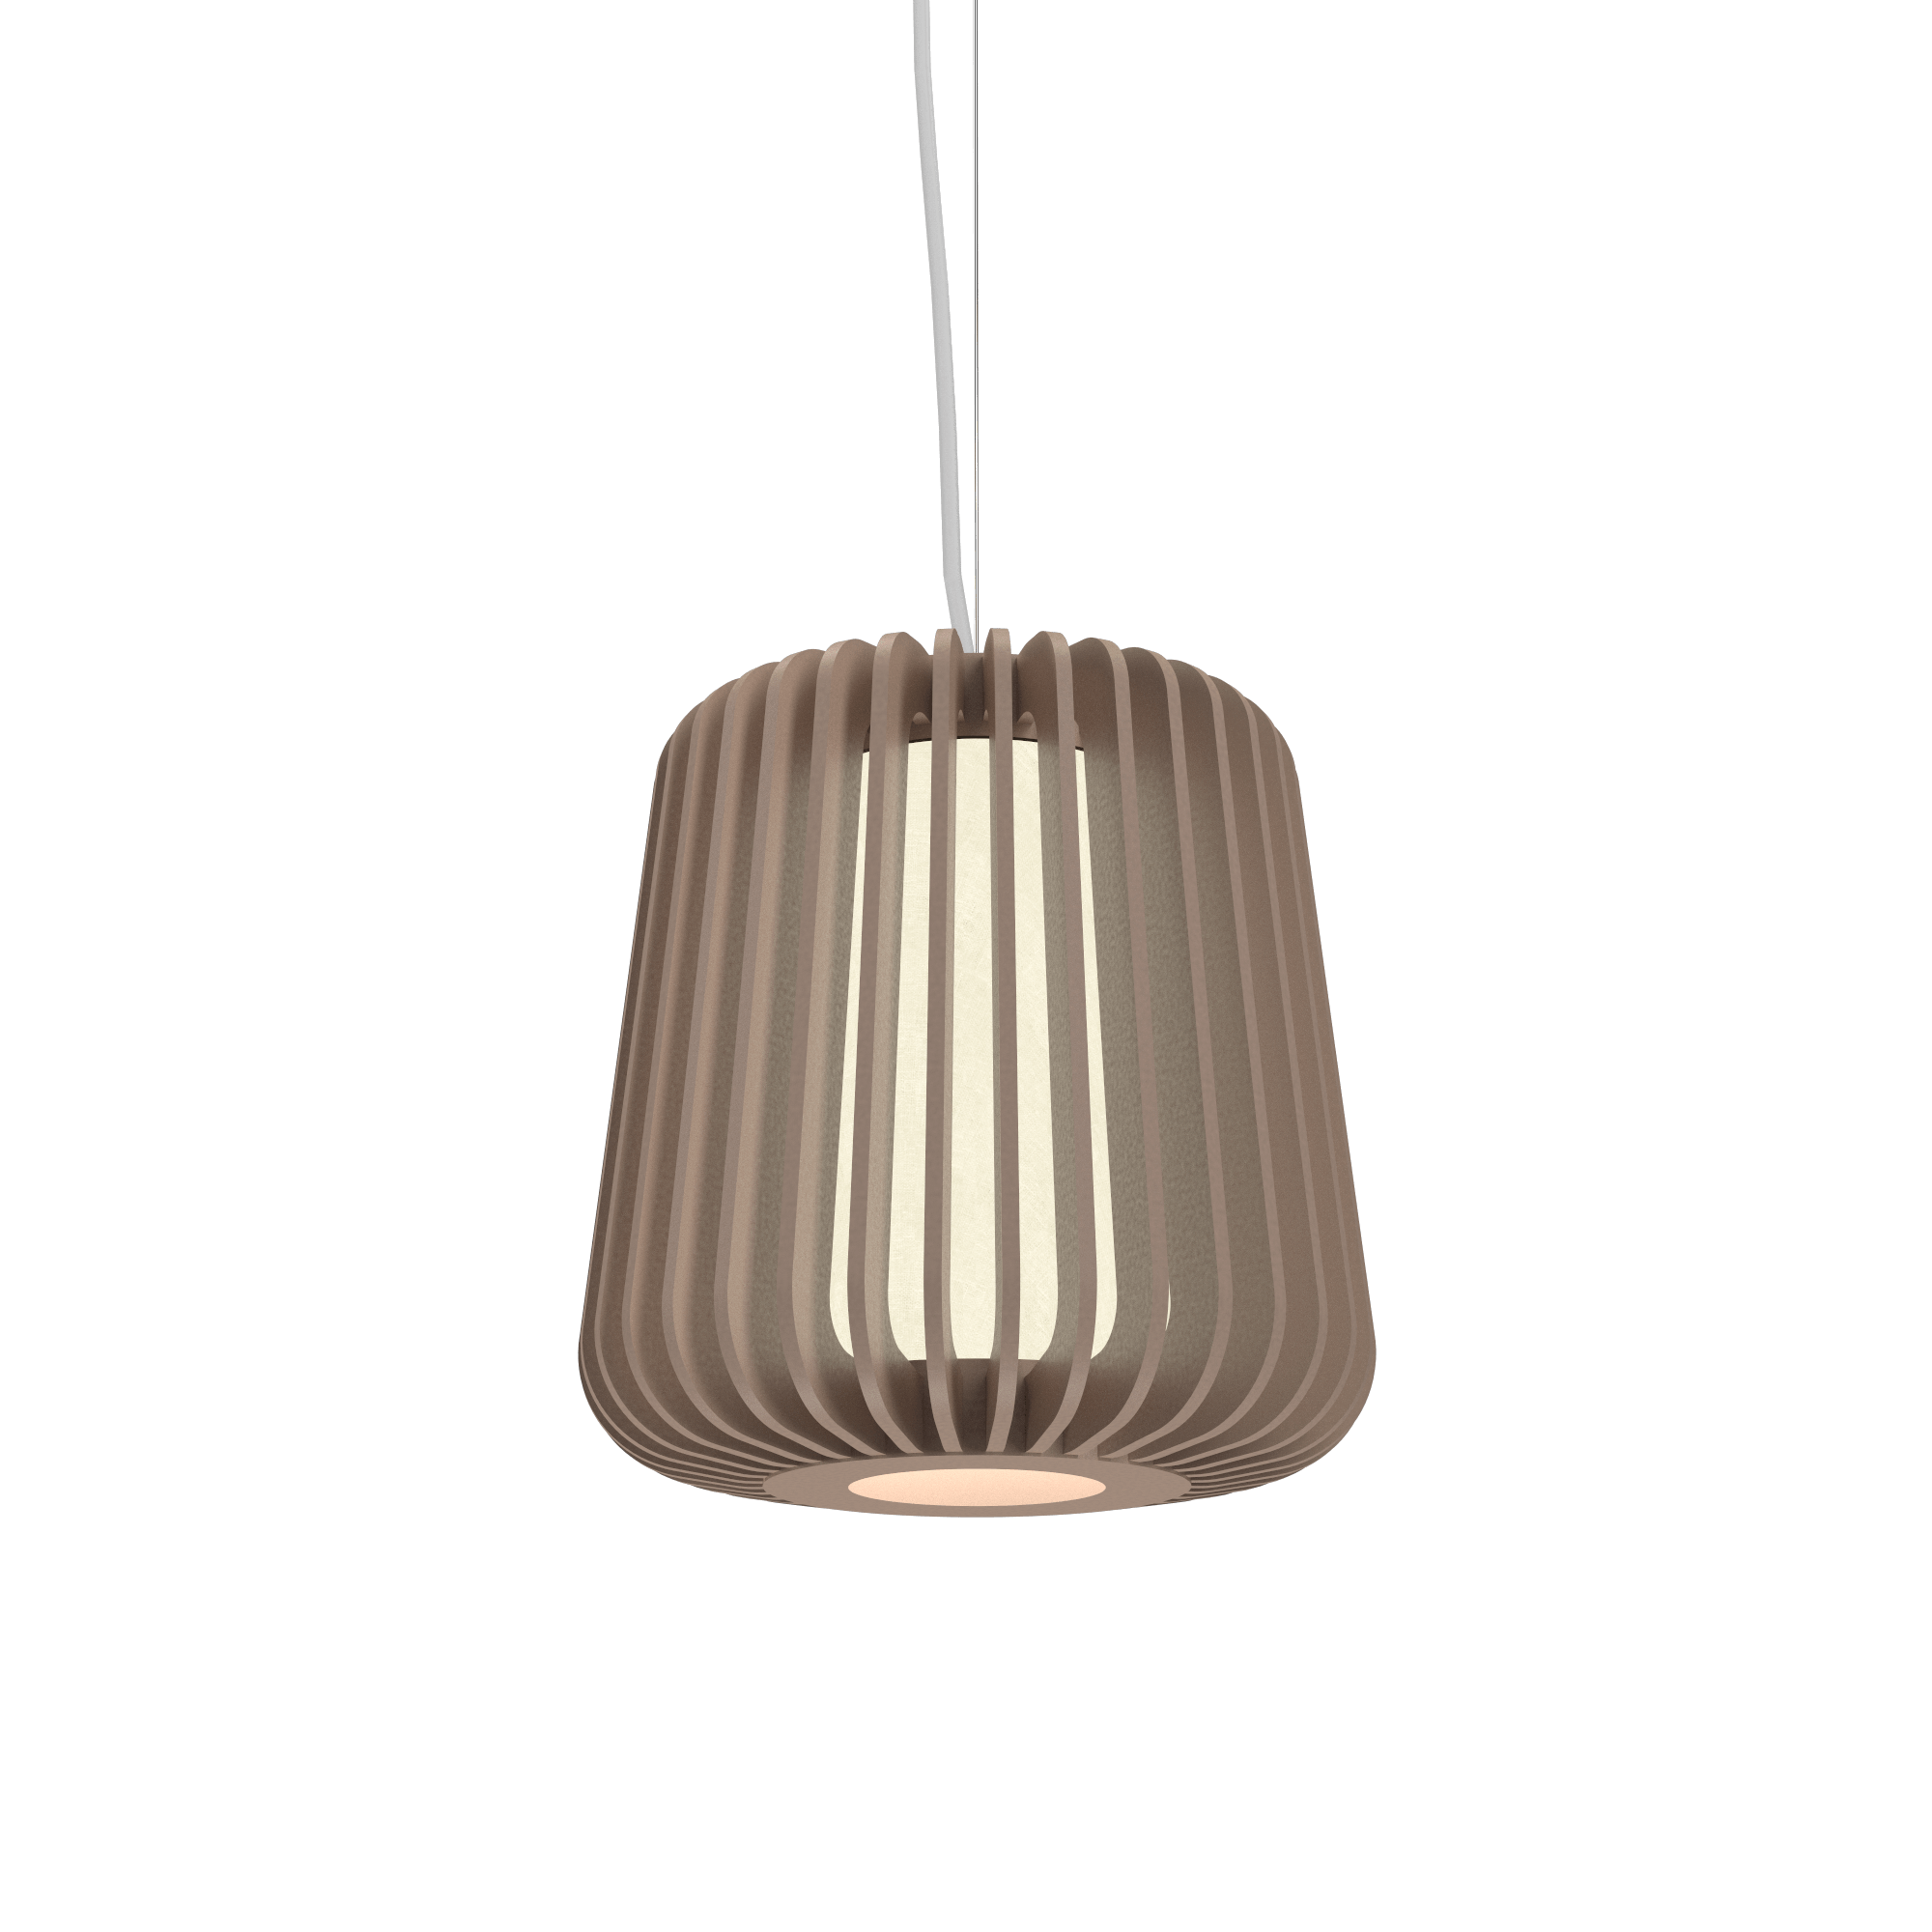 Pendant Lamp Accord Stecche Di Legno 1426 - Stecche Di Legno Line Accord Lighting | 33. Bronze